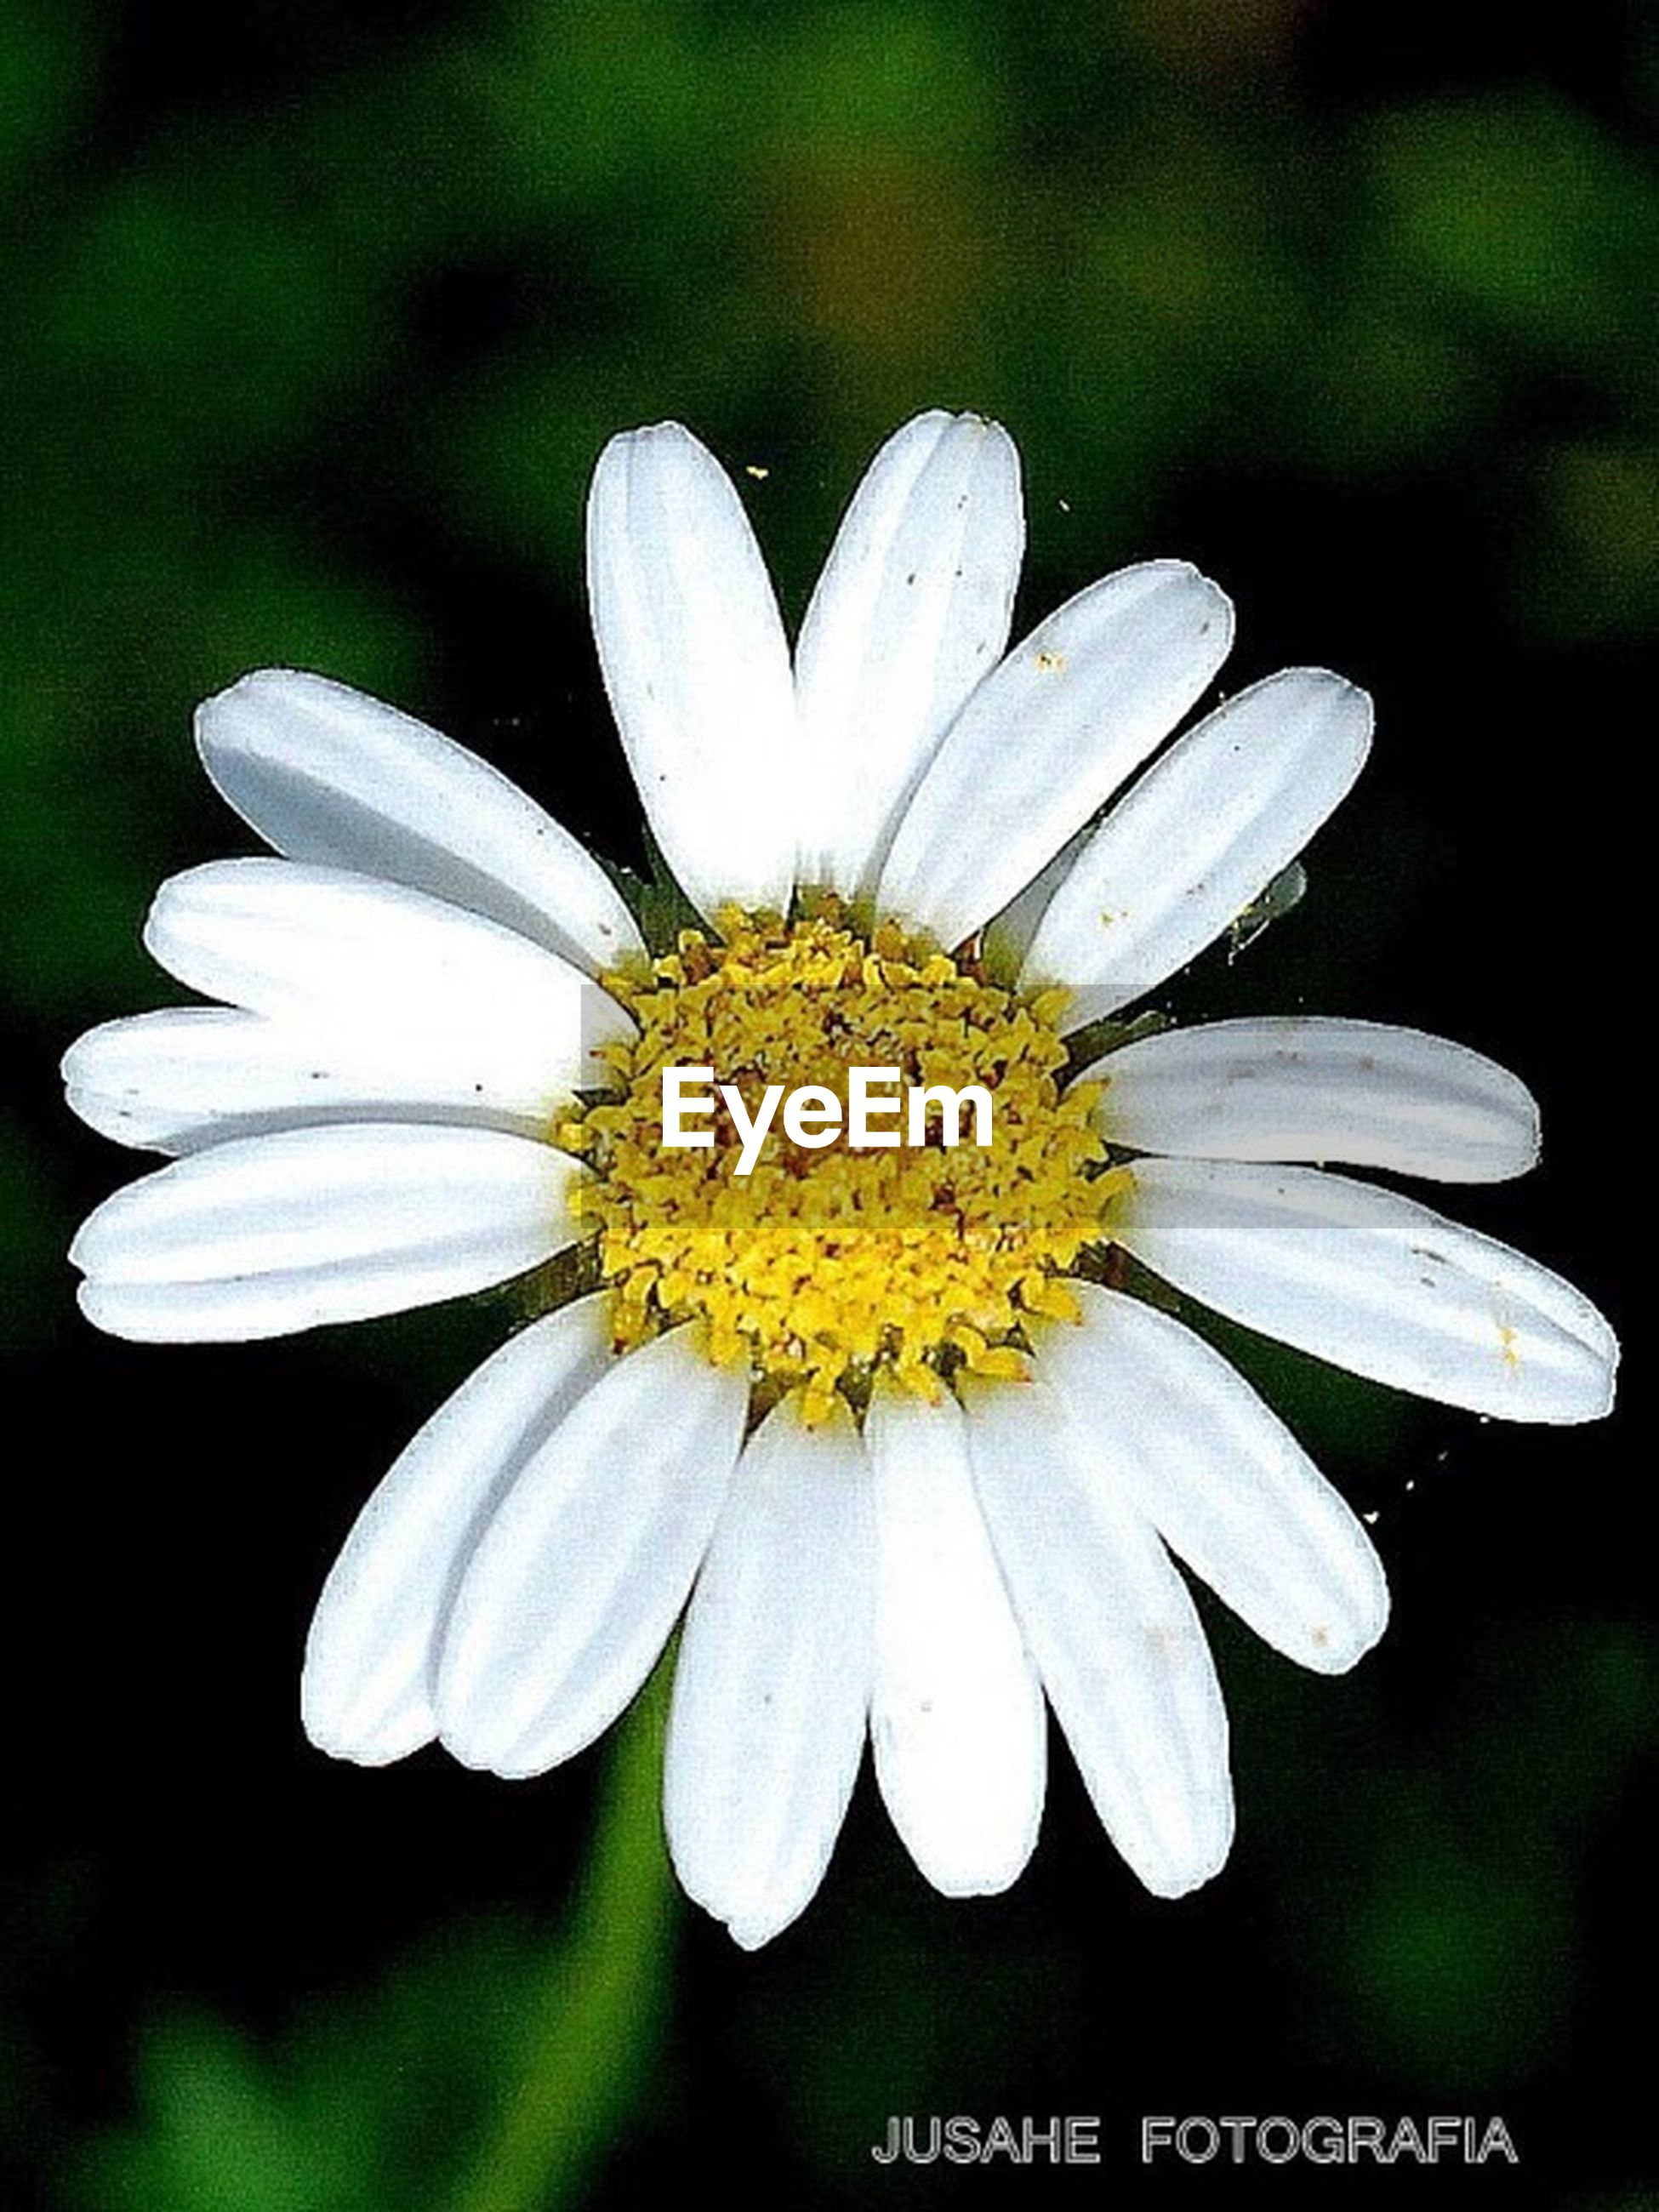 flower, freshness, petal, flower head, fragility, white color, close-up, beauty in nature, growth, pollen, single flower, nature, focus on foreground, daisy, blooming, stamen, white, selective focus, in bloom, yellow